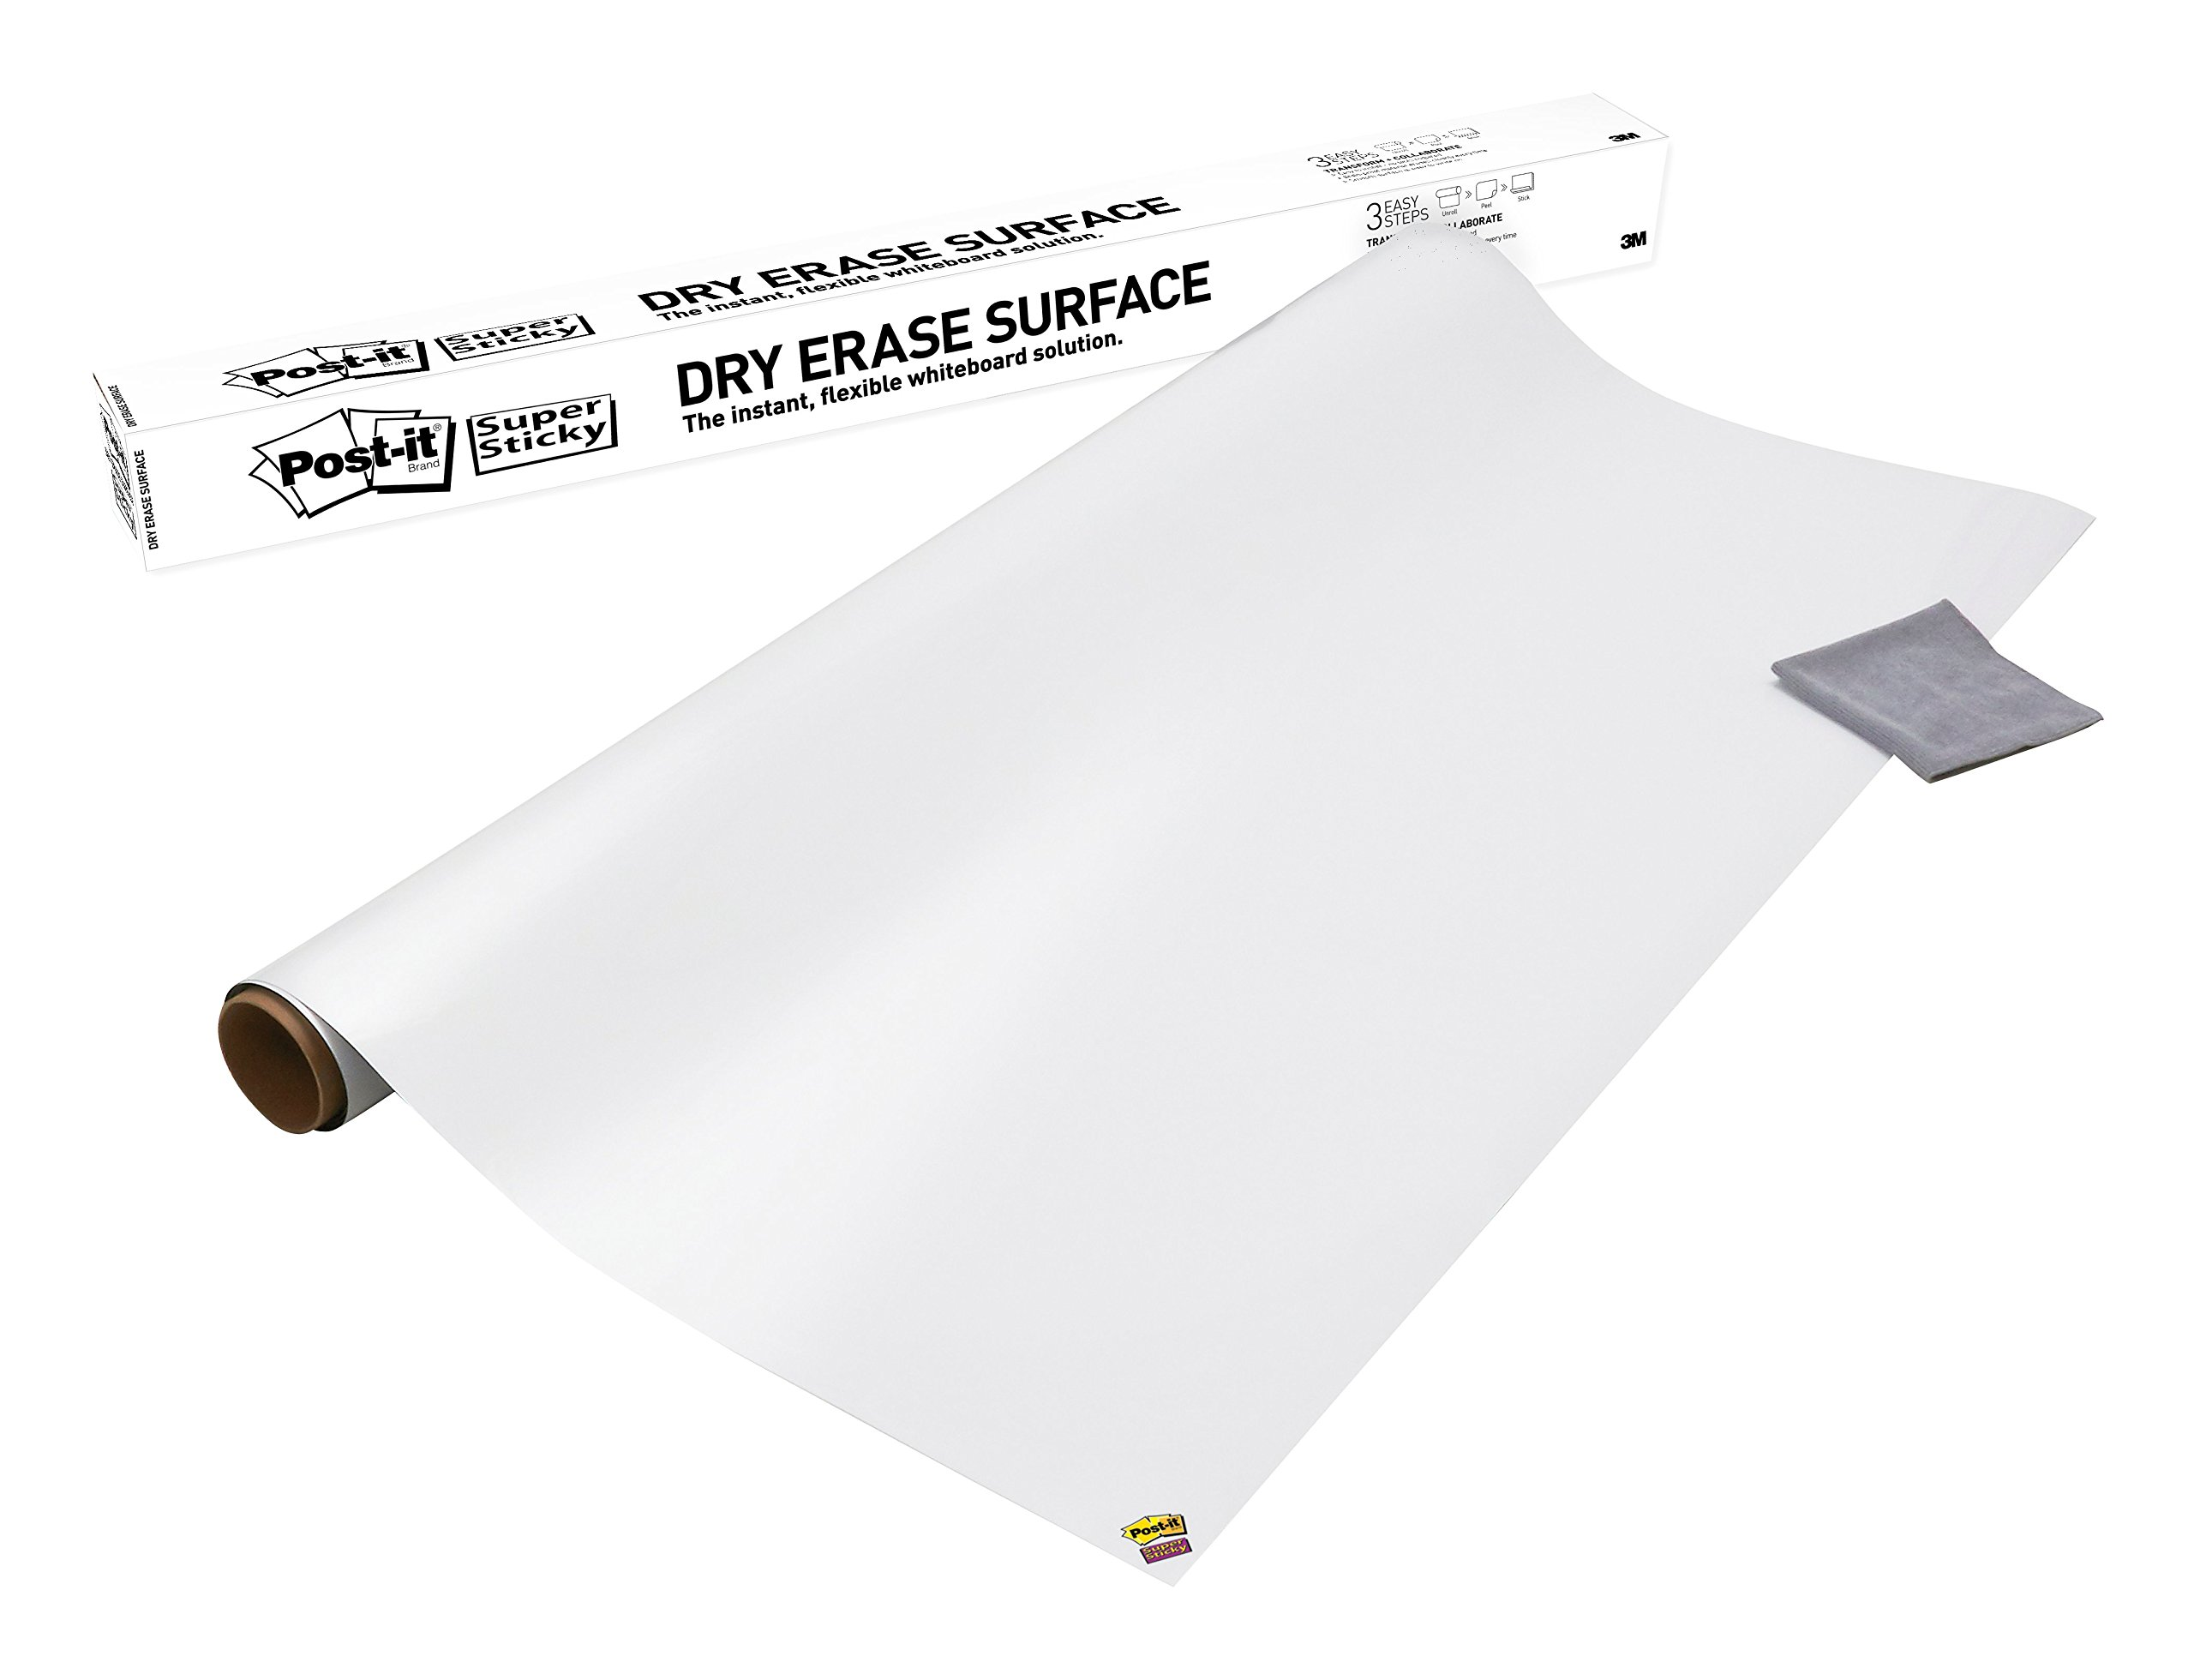 Post-it Dry Erase Whiteboard Film Surface for Walls, Doors, Tables, Chalkboards, Whiteboards, and More, Removable, Super Sticky, Stain-Proof, Easy Installation, 8 ft x 4 ft Roll (DEF8X4A)